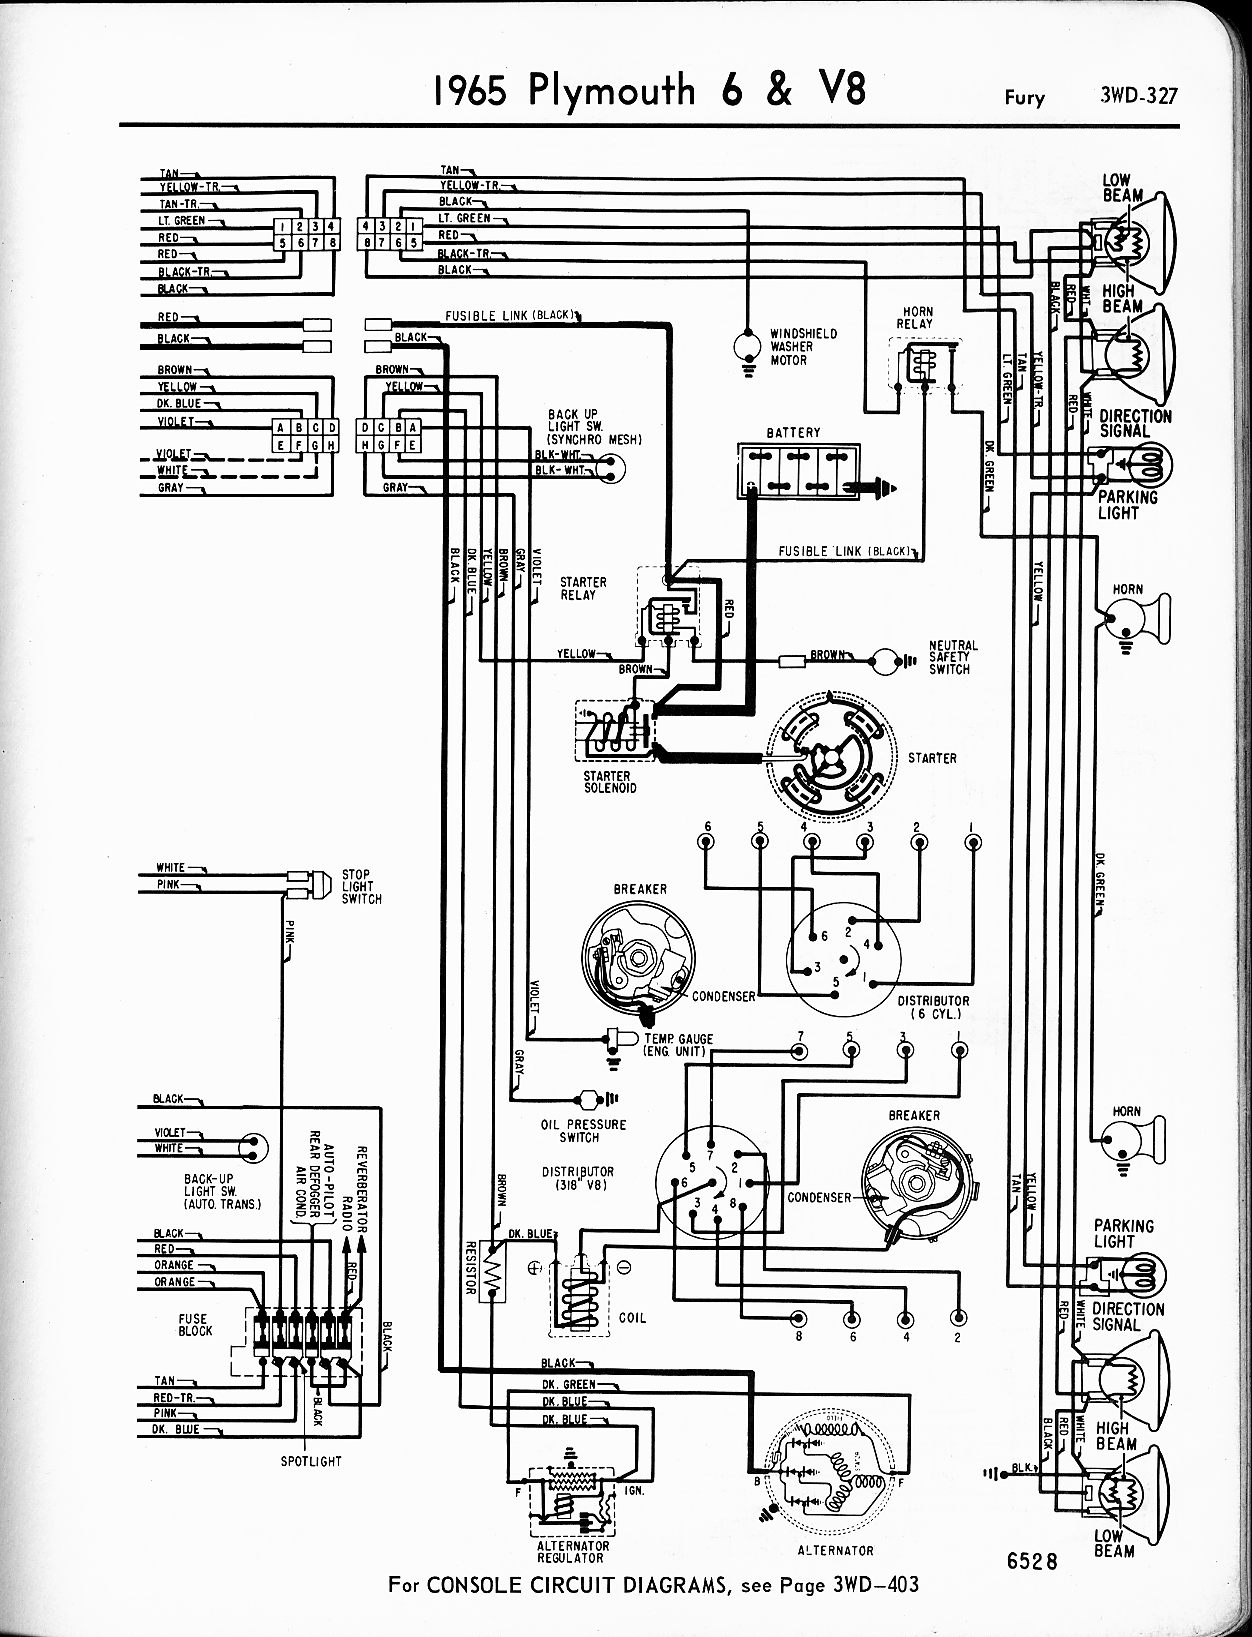 Sensational 1951 Ford Wiper Diagram Wiring Diagram Database Wiring Digital Resources Unprprontobusorg